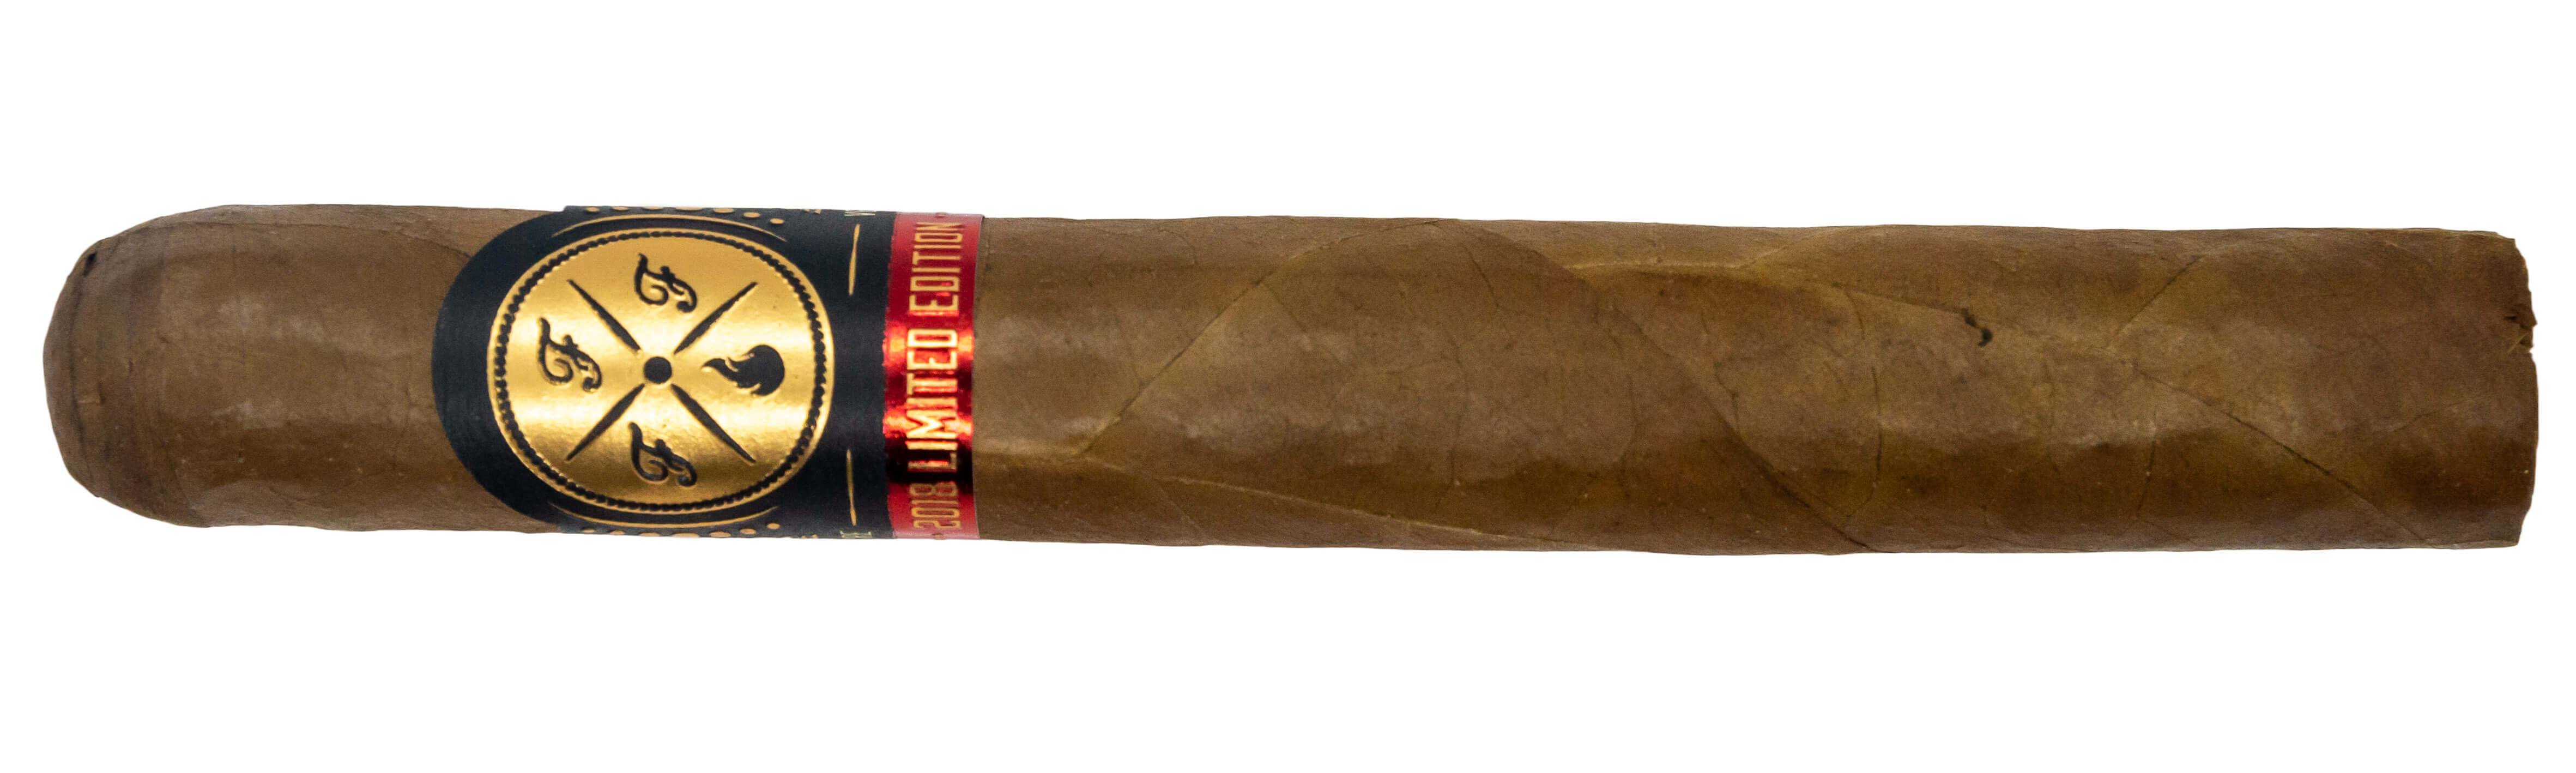 Blind Cigar Review: Ventura | Fathers, Friends & Fire - Father-Daughter